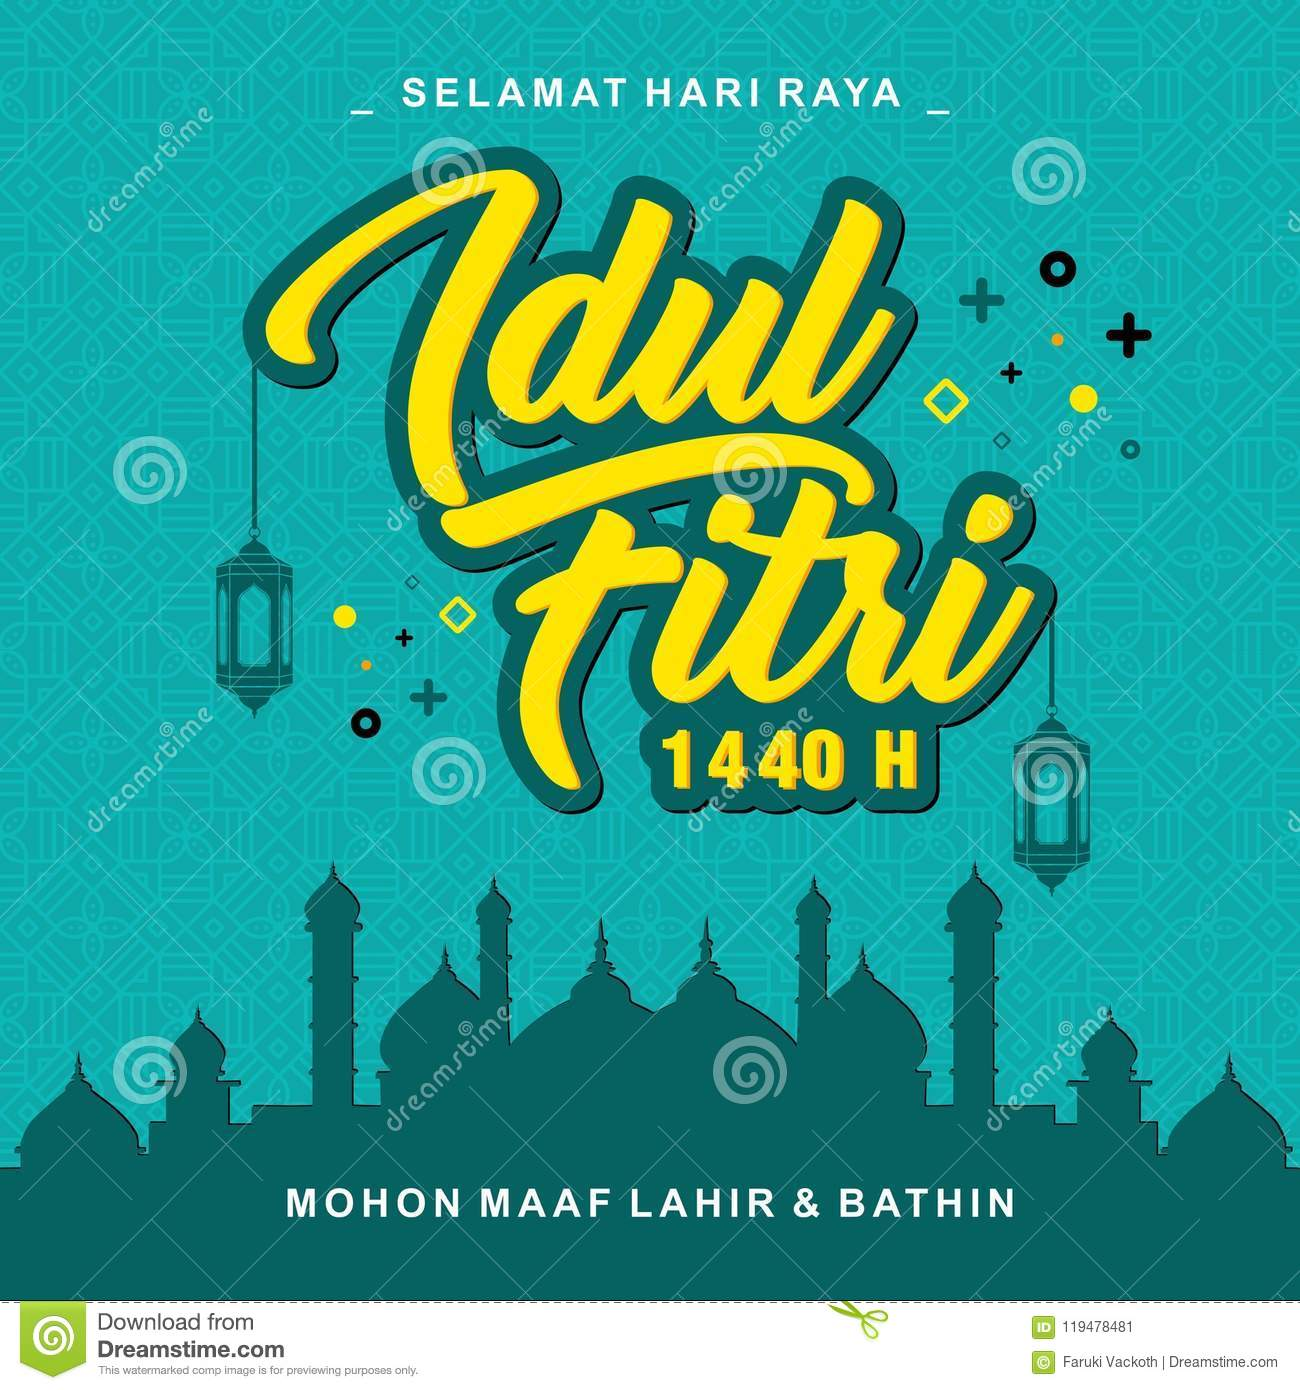 Idul Fitri 1440 H Vector